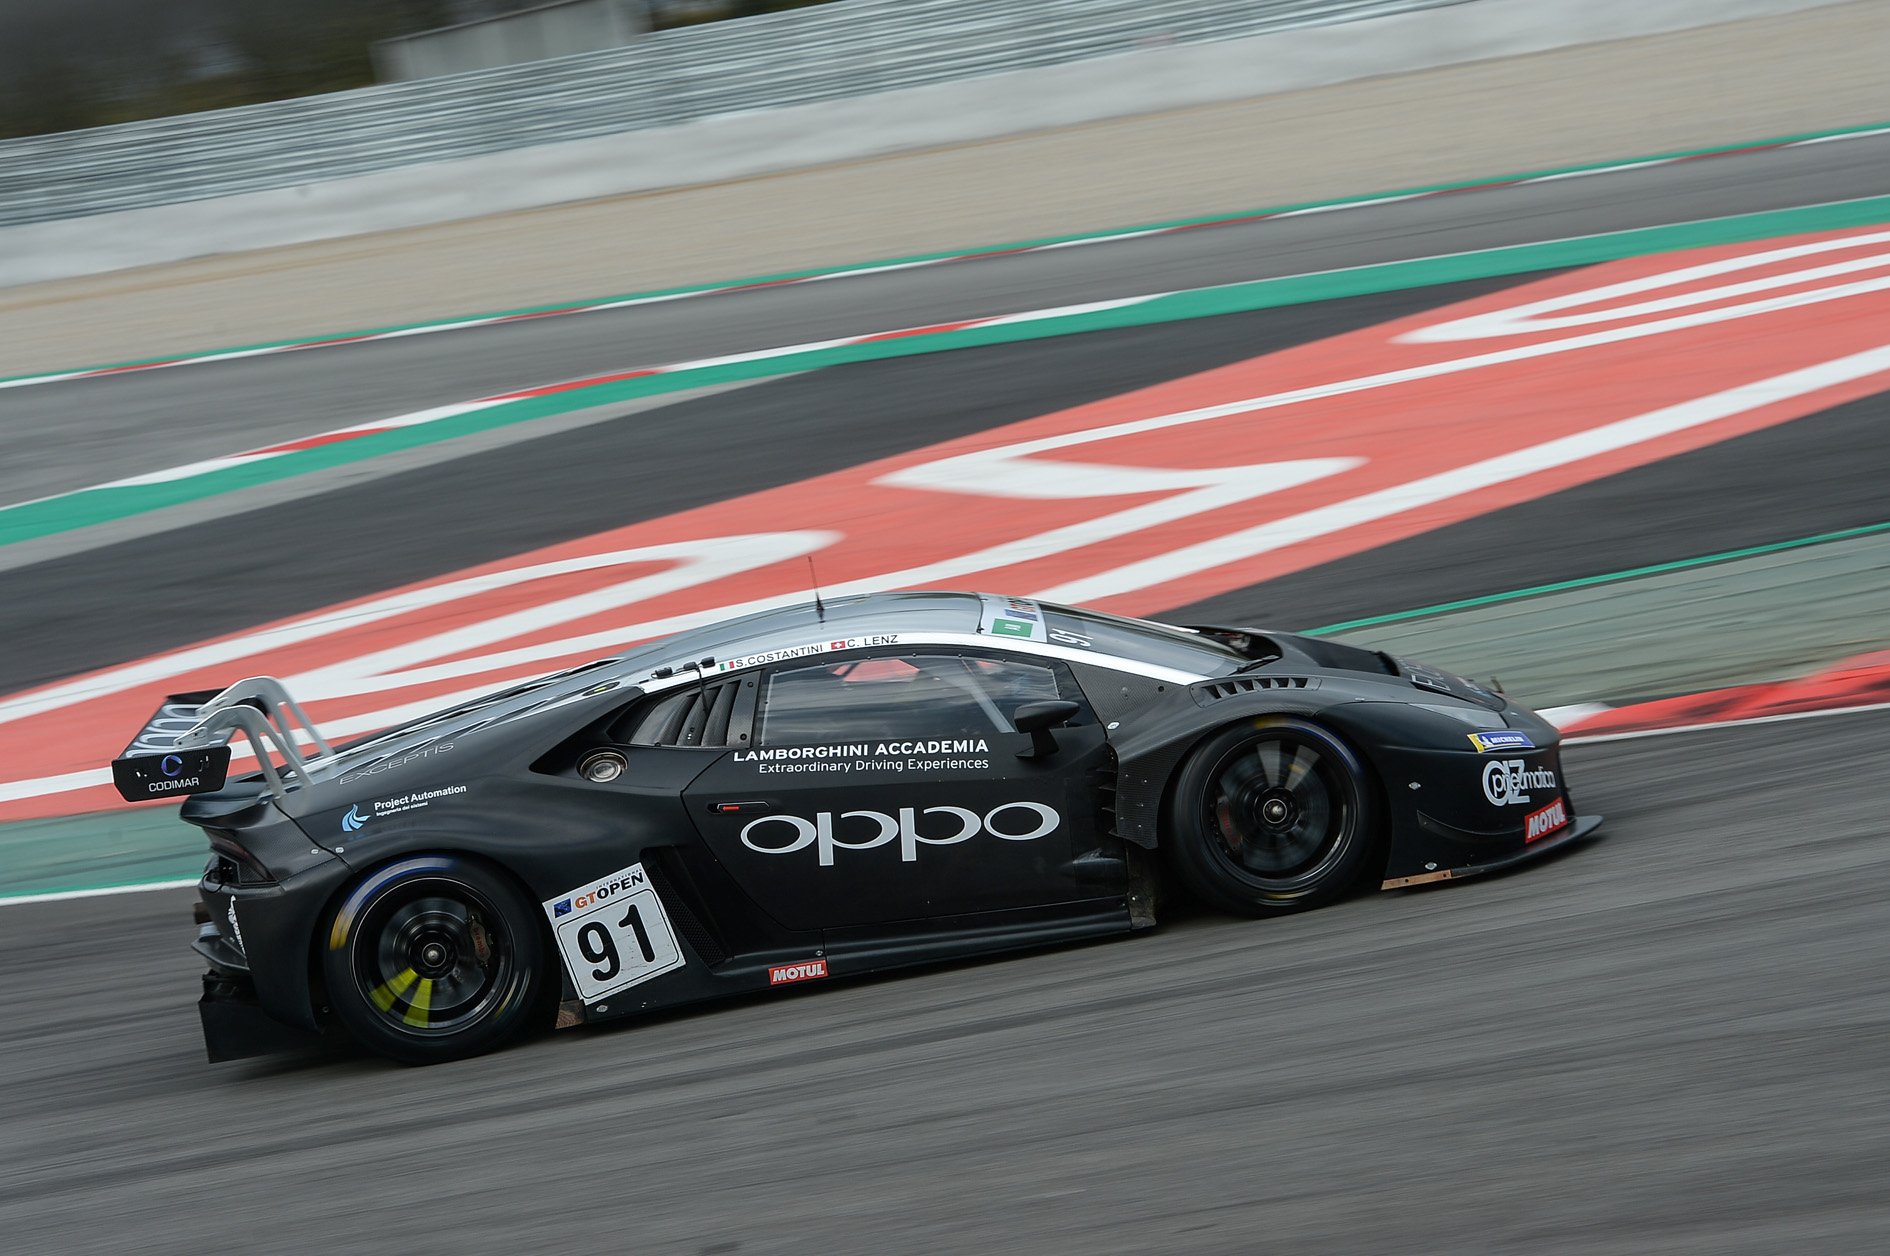 Target Racing enters 24H Dubai with a top line-up